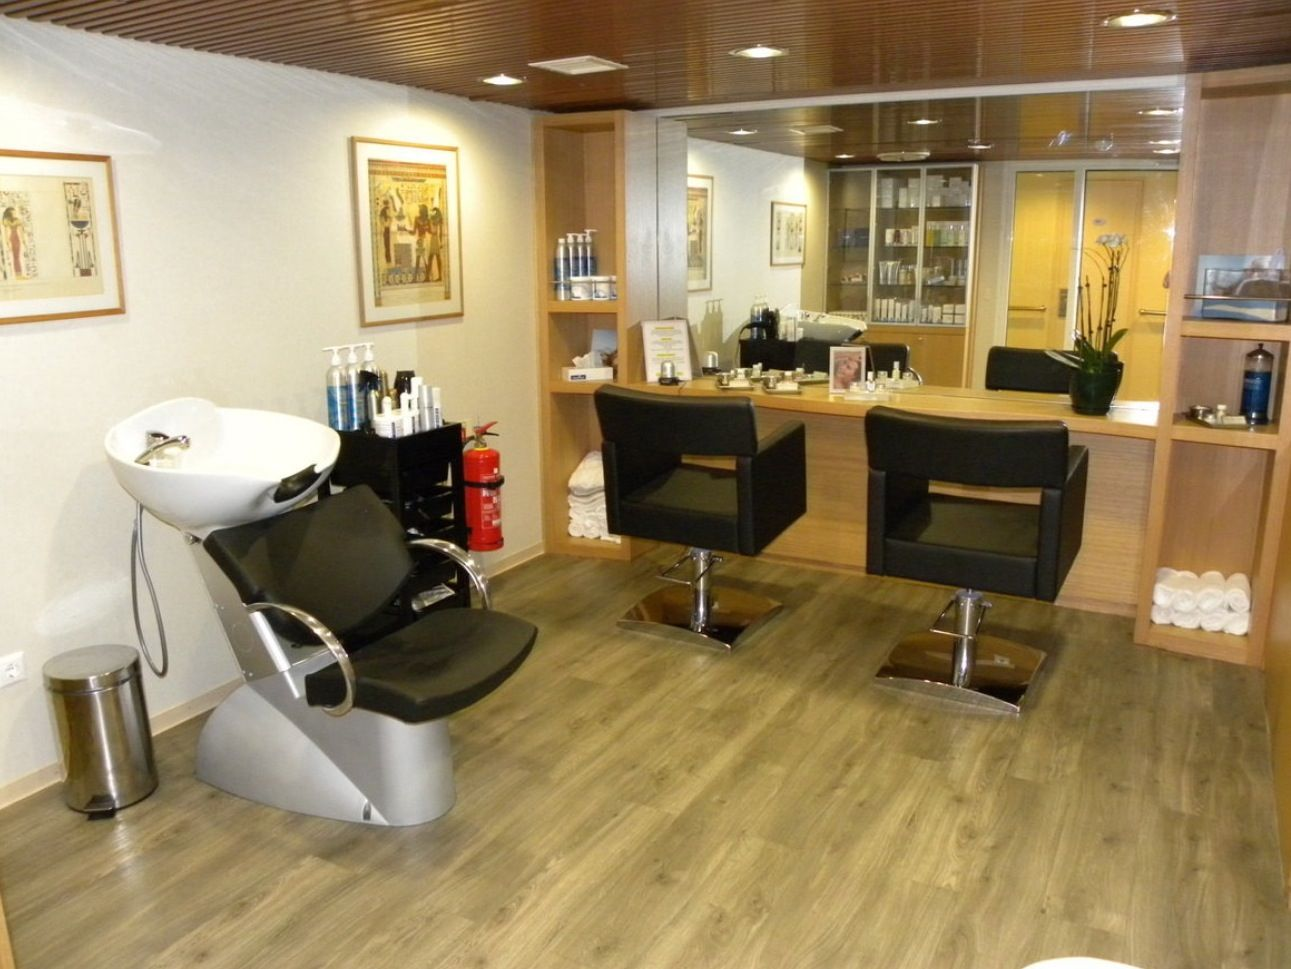 Salon Inspiration Small Salon Perfect Want Want Want Just For Me